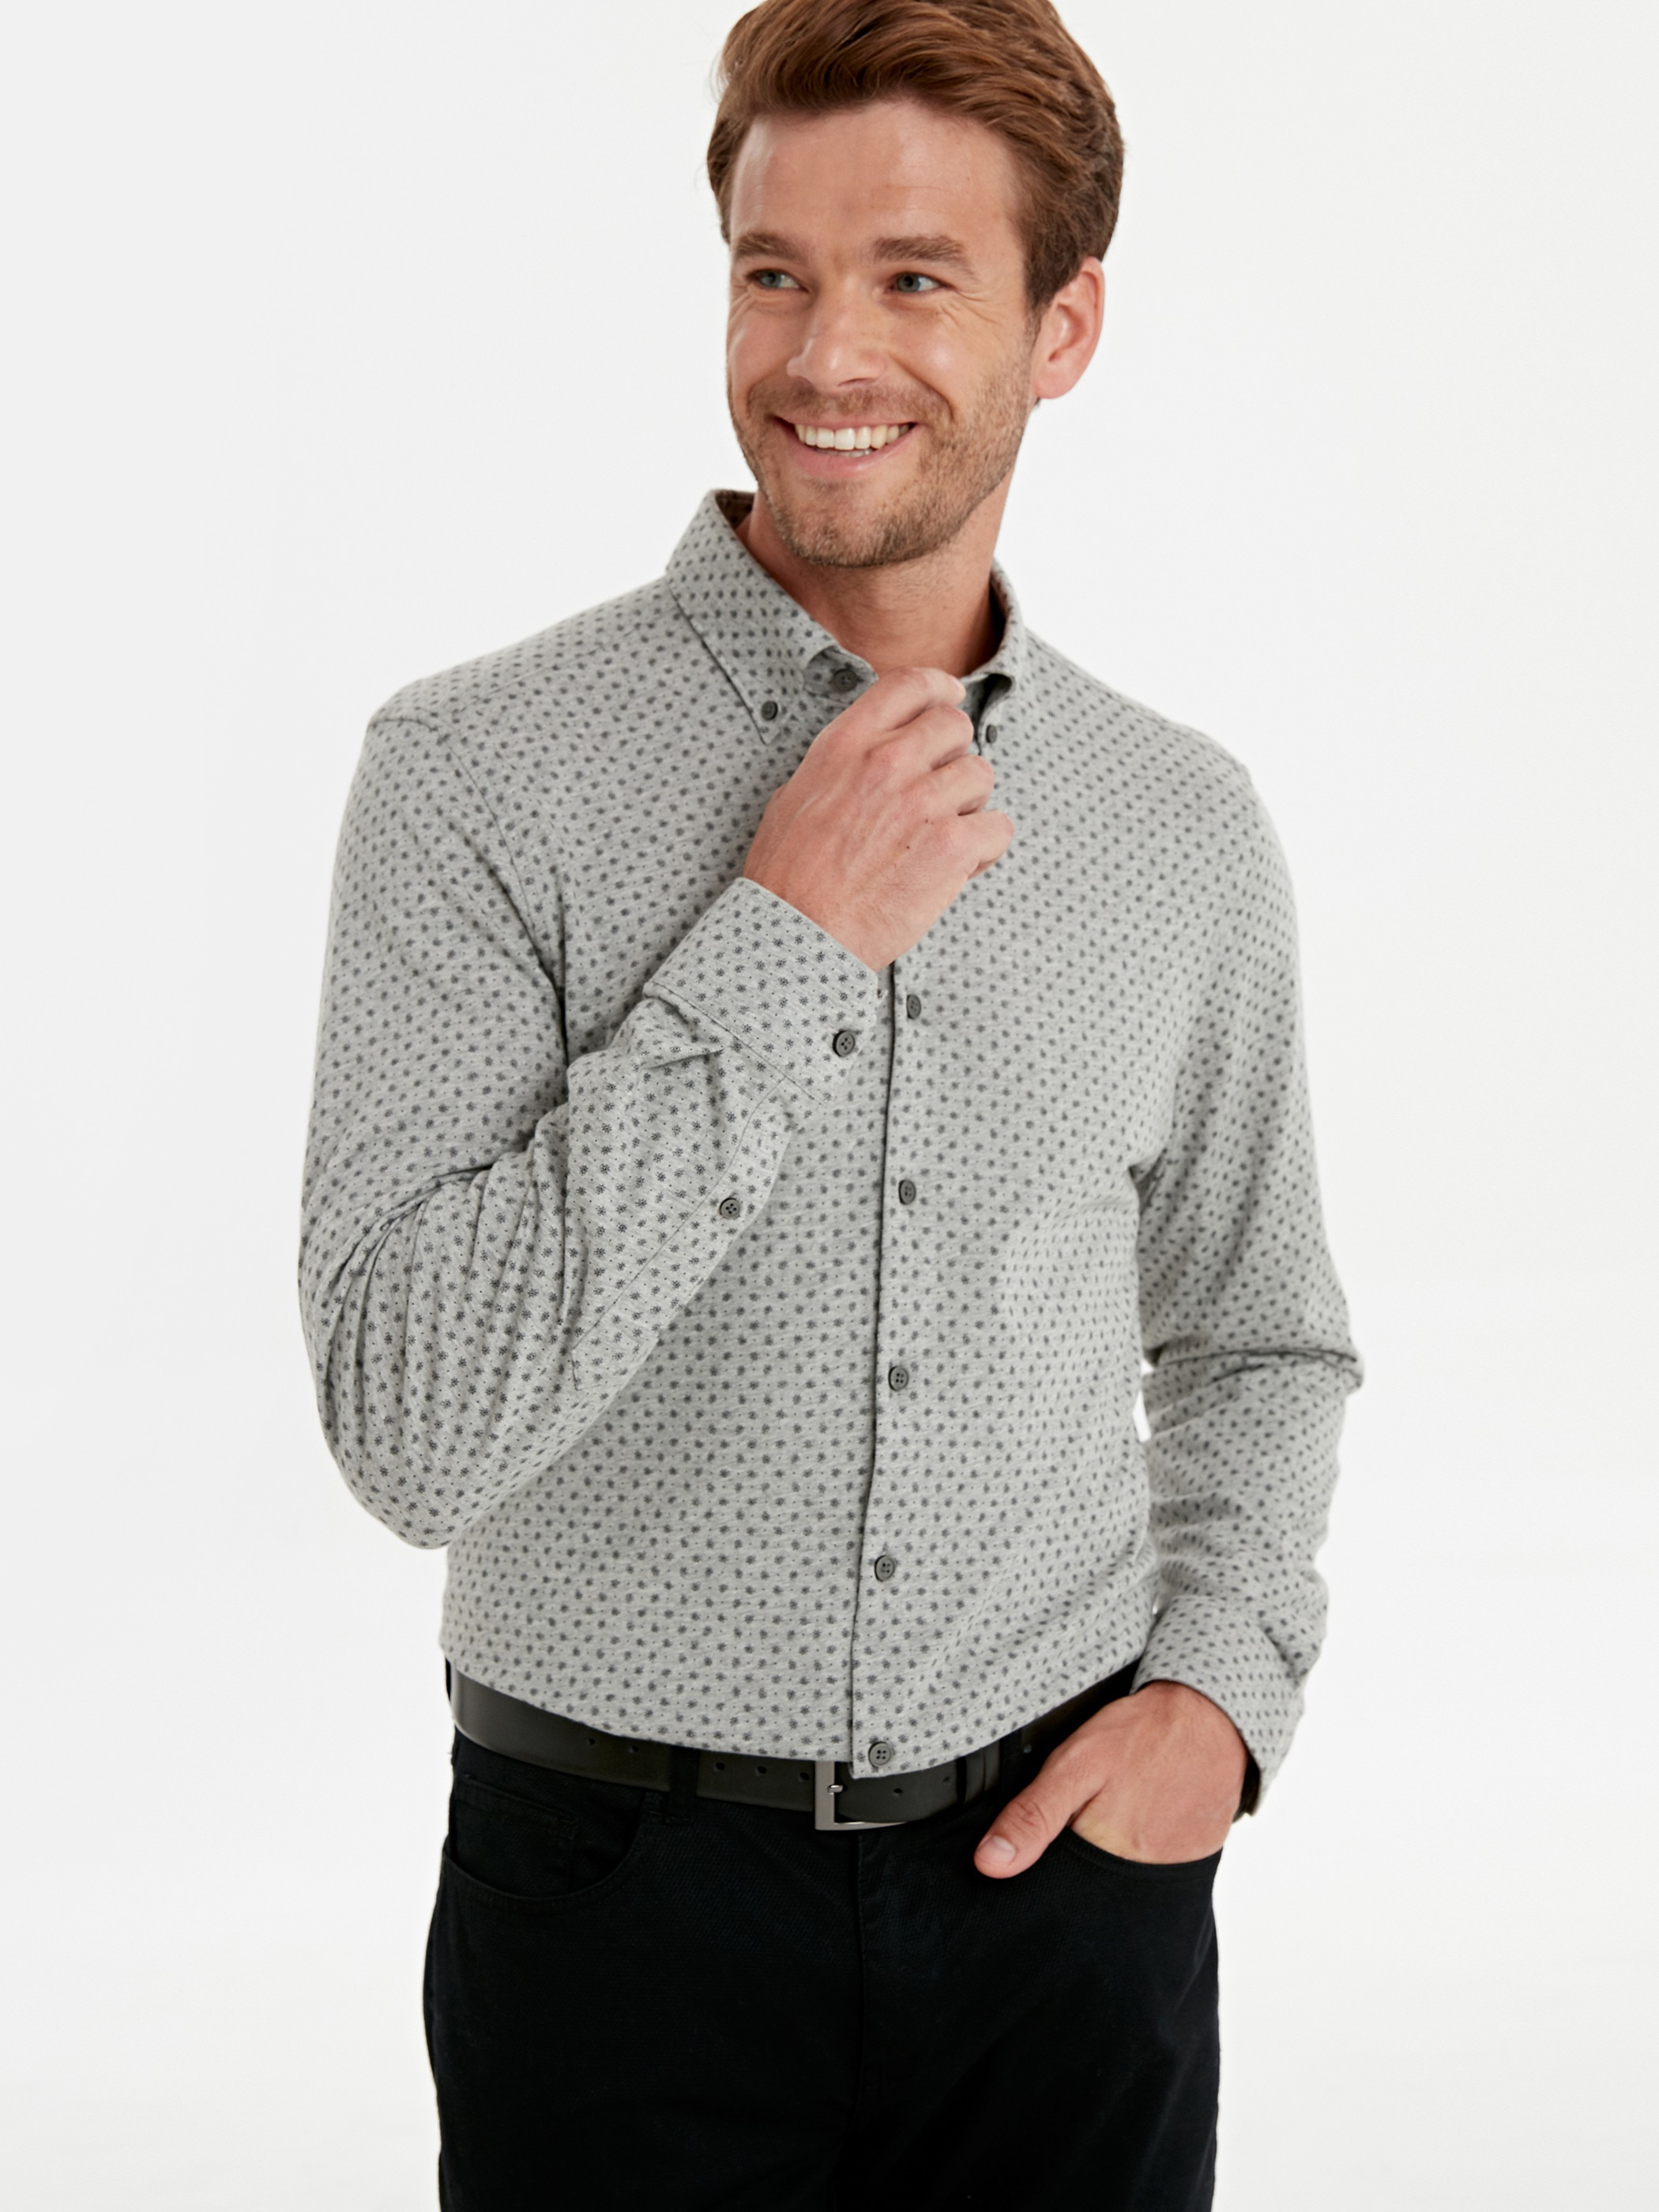 GREY - Slim Fit Long Sleeve Printed Knitted Fabric Shirt - 9W5883Z8